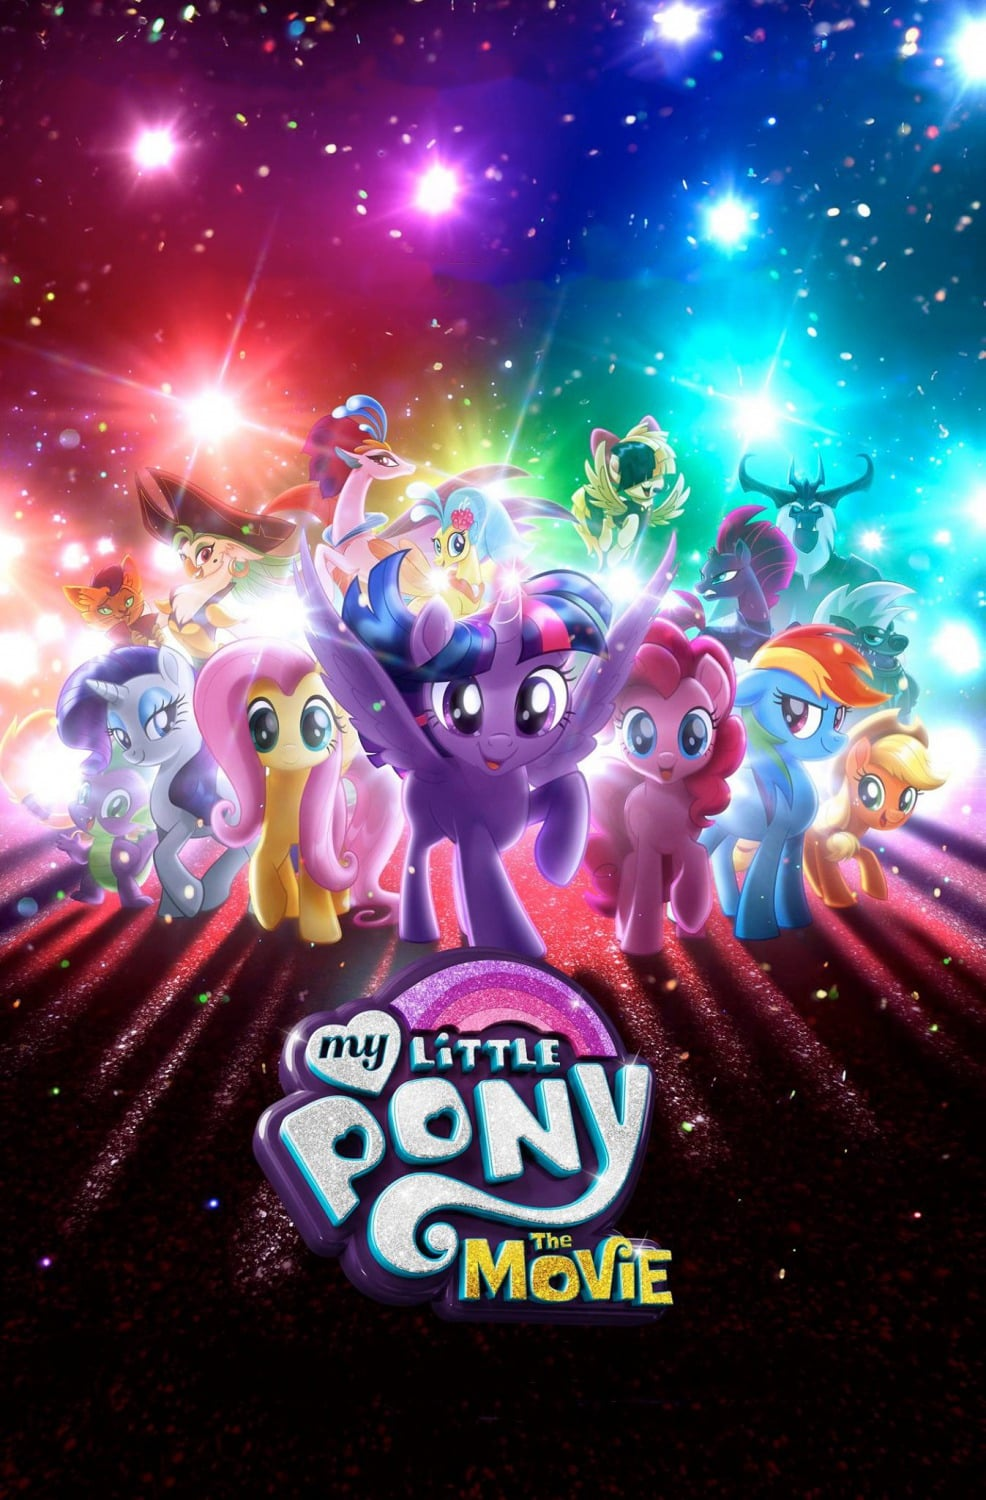 image for My Little Pony: The Movie